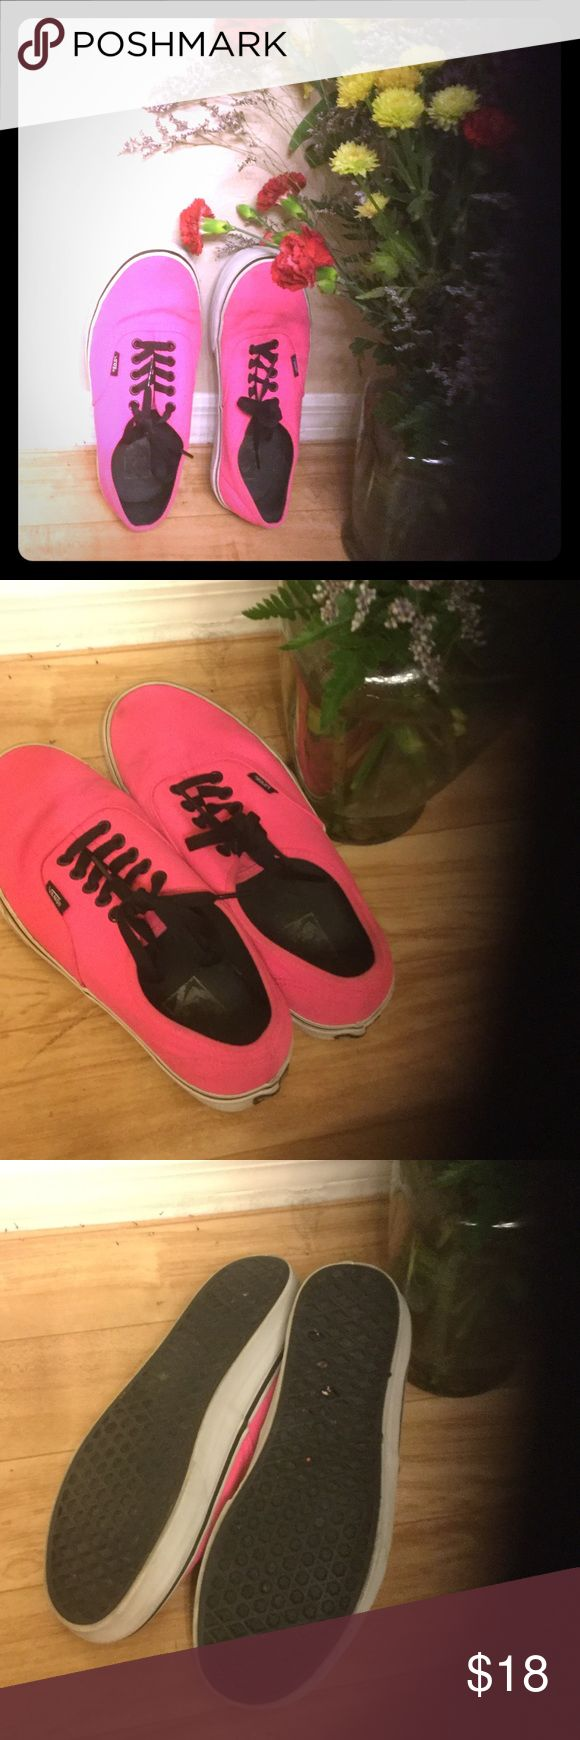 GUC pink neon vans black laces Pink neon vans black laces 9.5 women's I like to go up half a size to wear with socks. These are recently washed and ready for a cool new owner! Classic original skate shoes! No trades. Vans Shoes